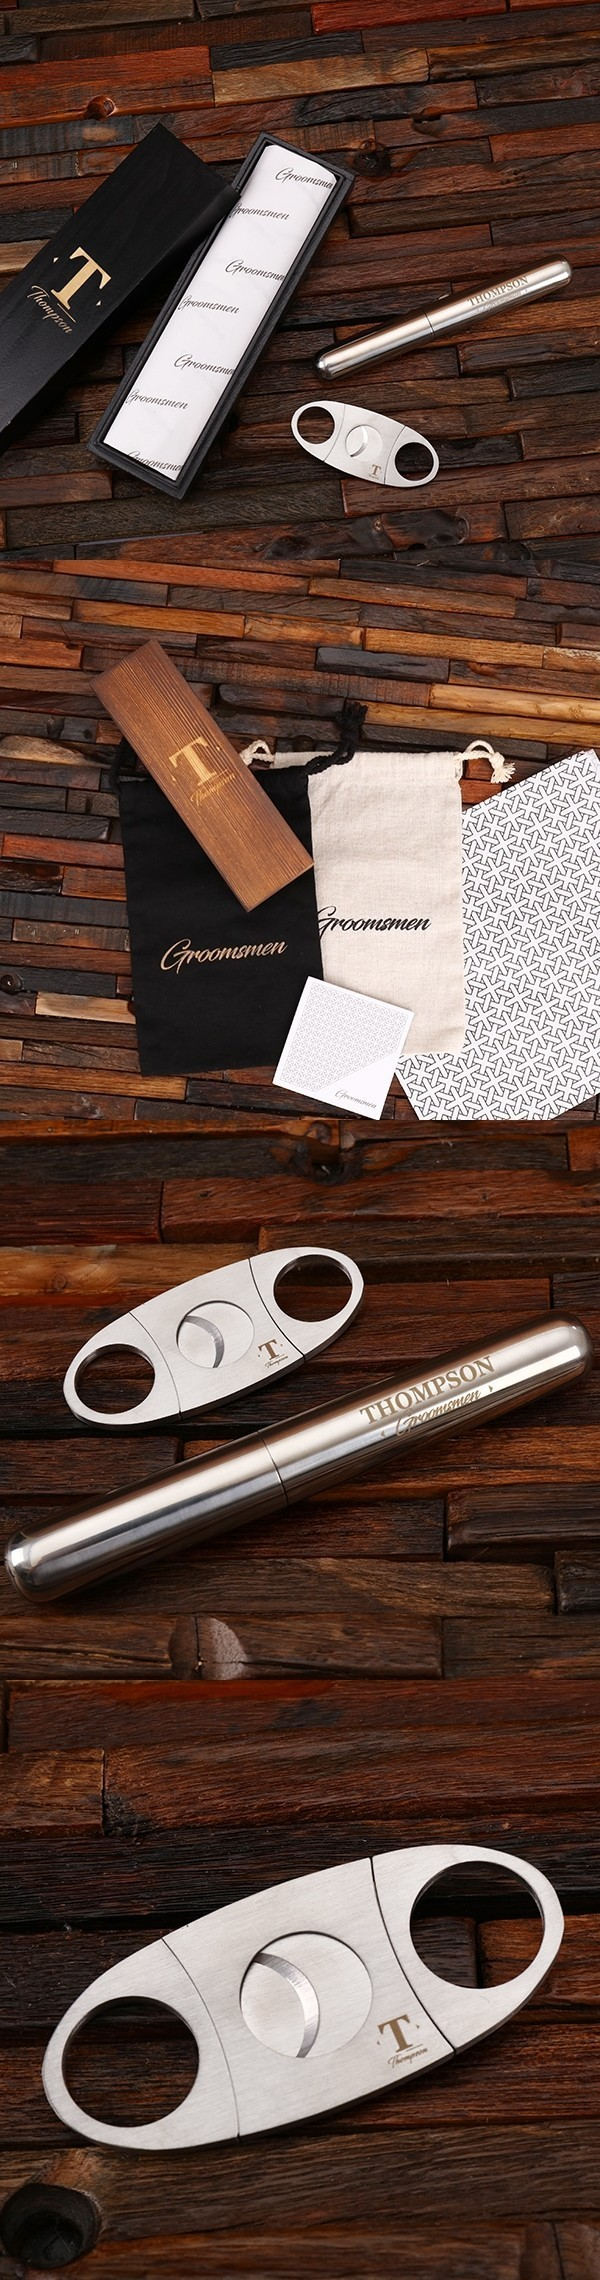 Personalized Cigar Cutter and Holder in Wood Gift-Box Groomsmen Gift